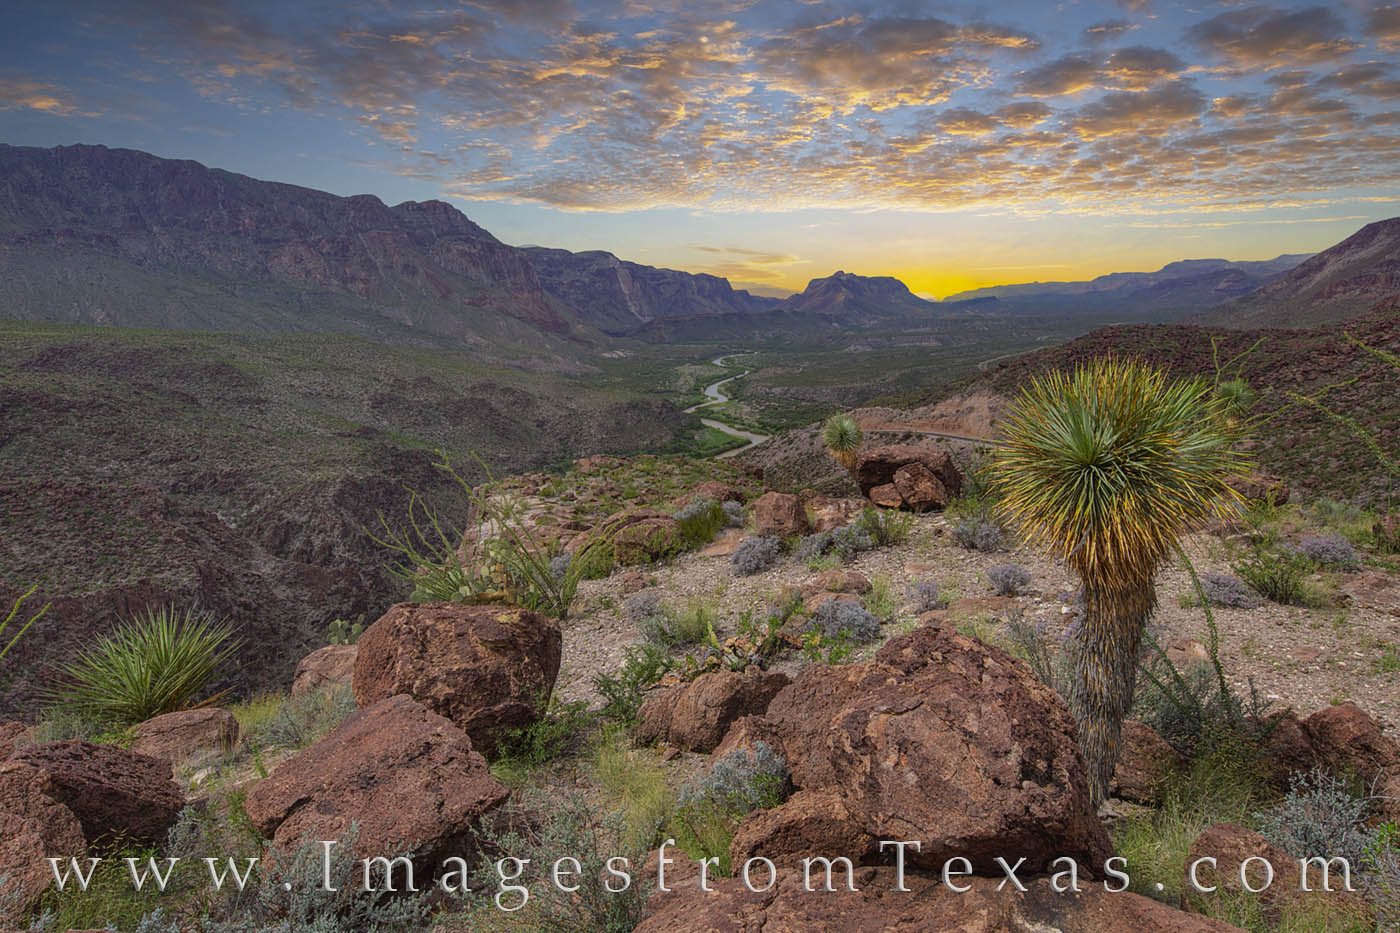 Driving FM 170 between Lajitas and Presidio, the views along the Rio Grande are amazing. When in this more accessible area of...